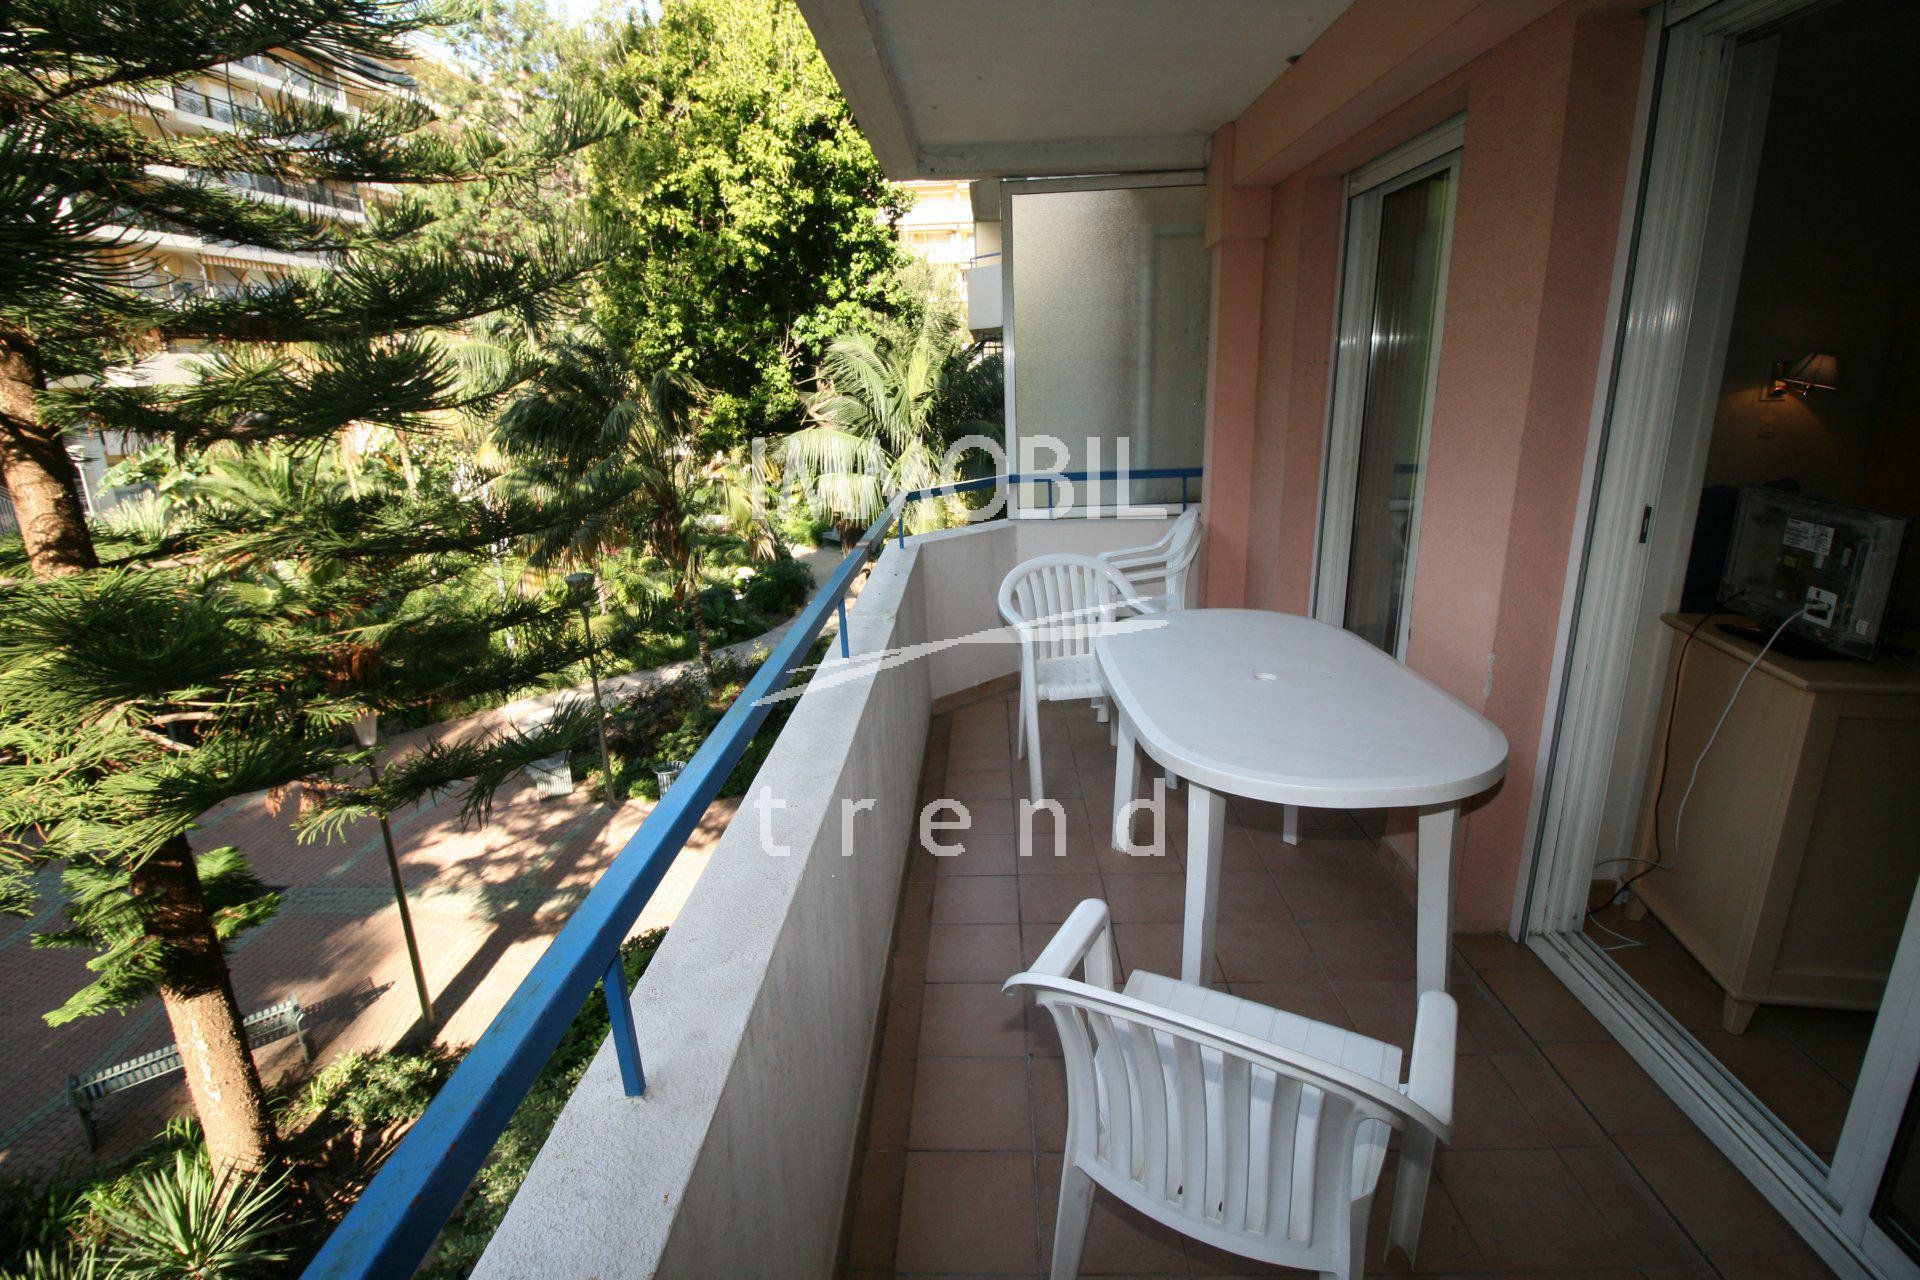 Real Estate Menton - One bedroom apartment with terrace for sale in the town centre.